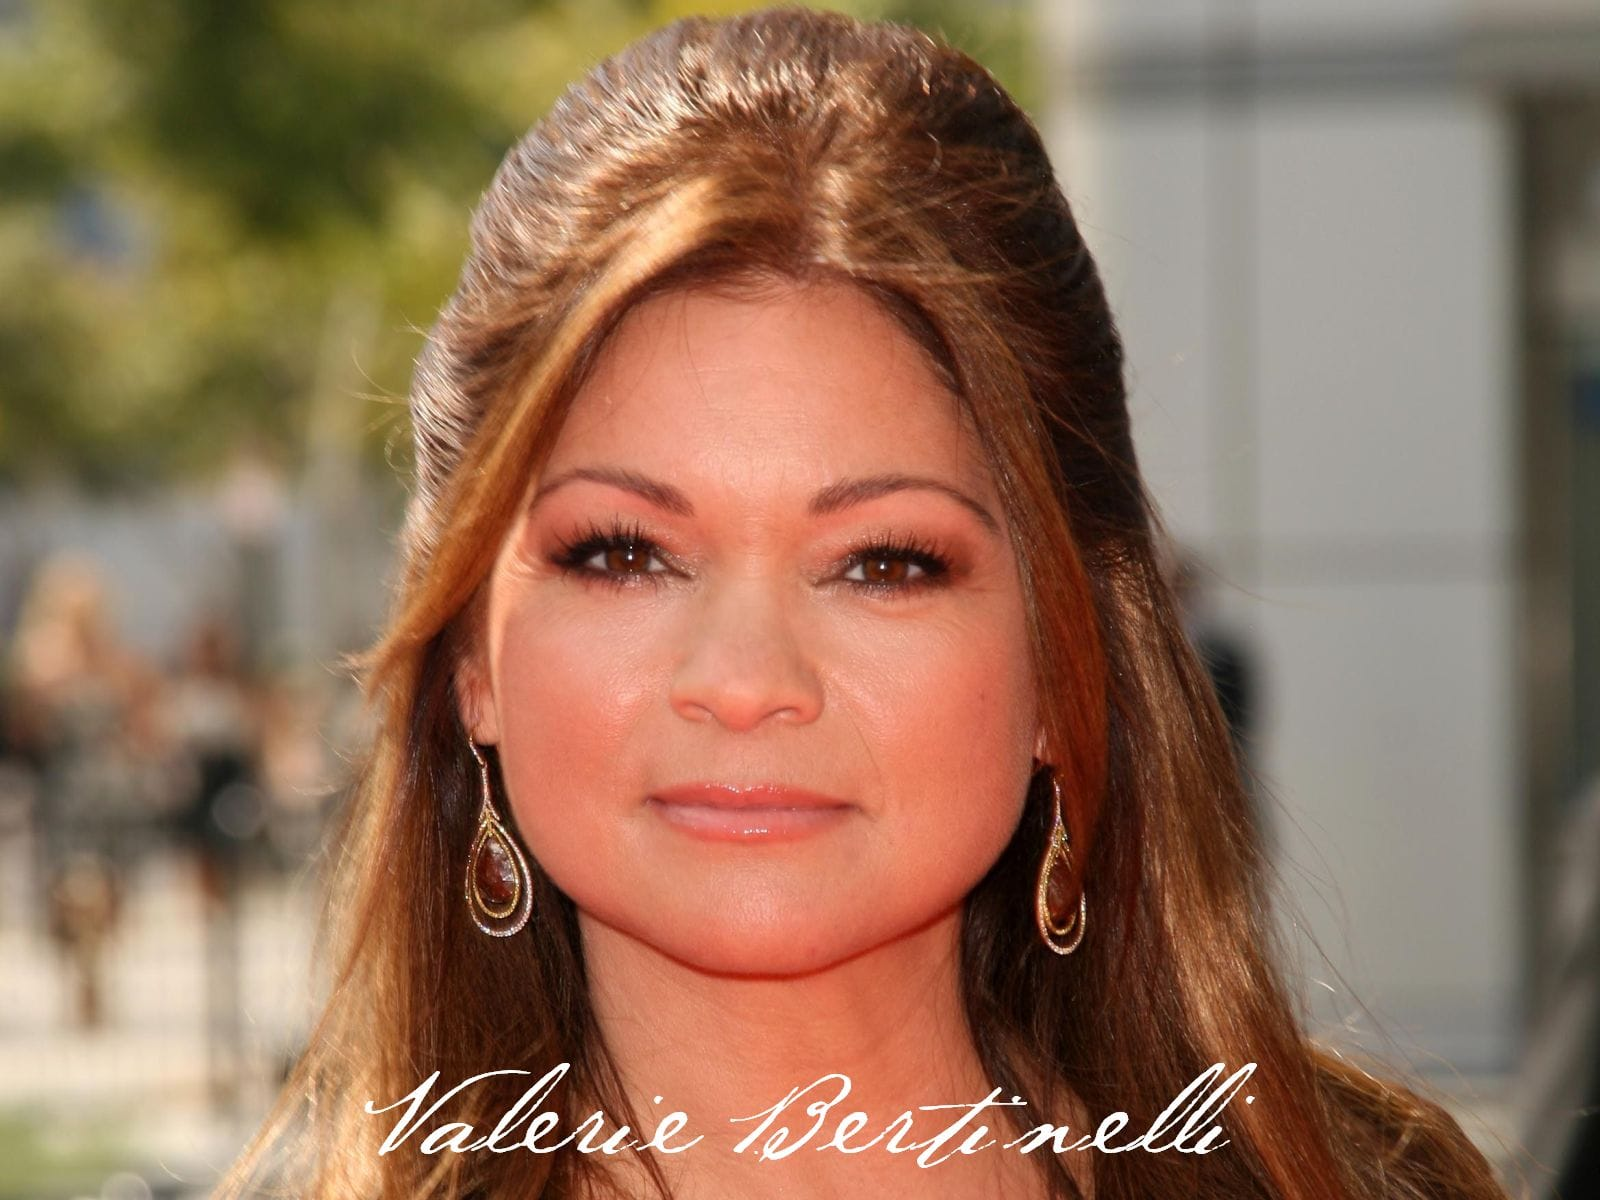 Valerie Bertinelli Full hd wallpapers